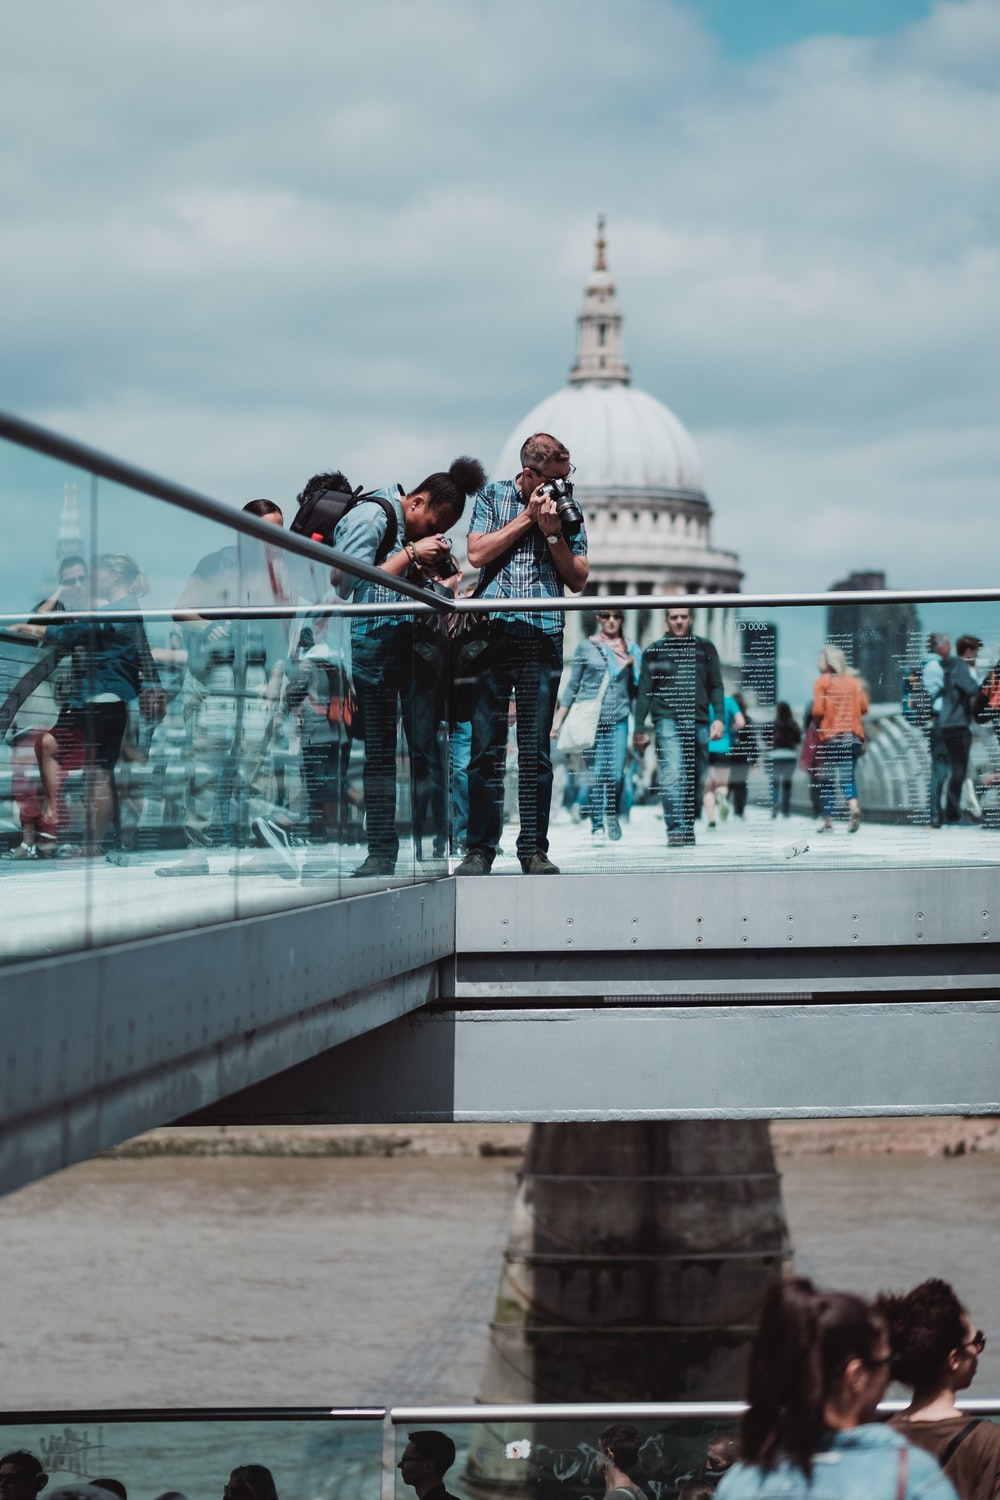 people standing over railings taking a photo